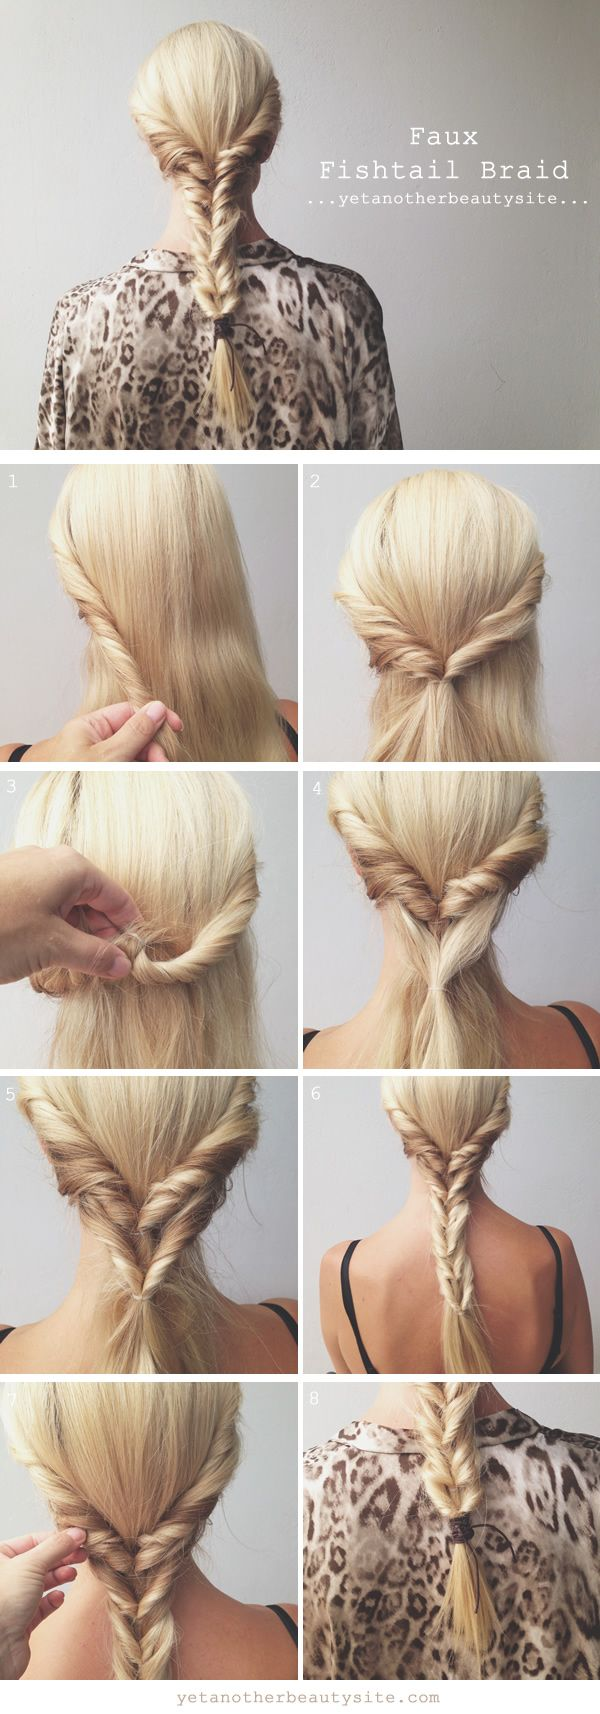 Other hairstyle tutorials here http://pinmakeuptips.com/what-are-the-10-biggest-hair-care-mistakes/